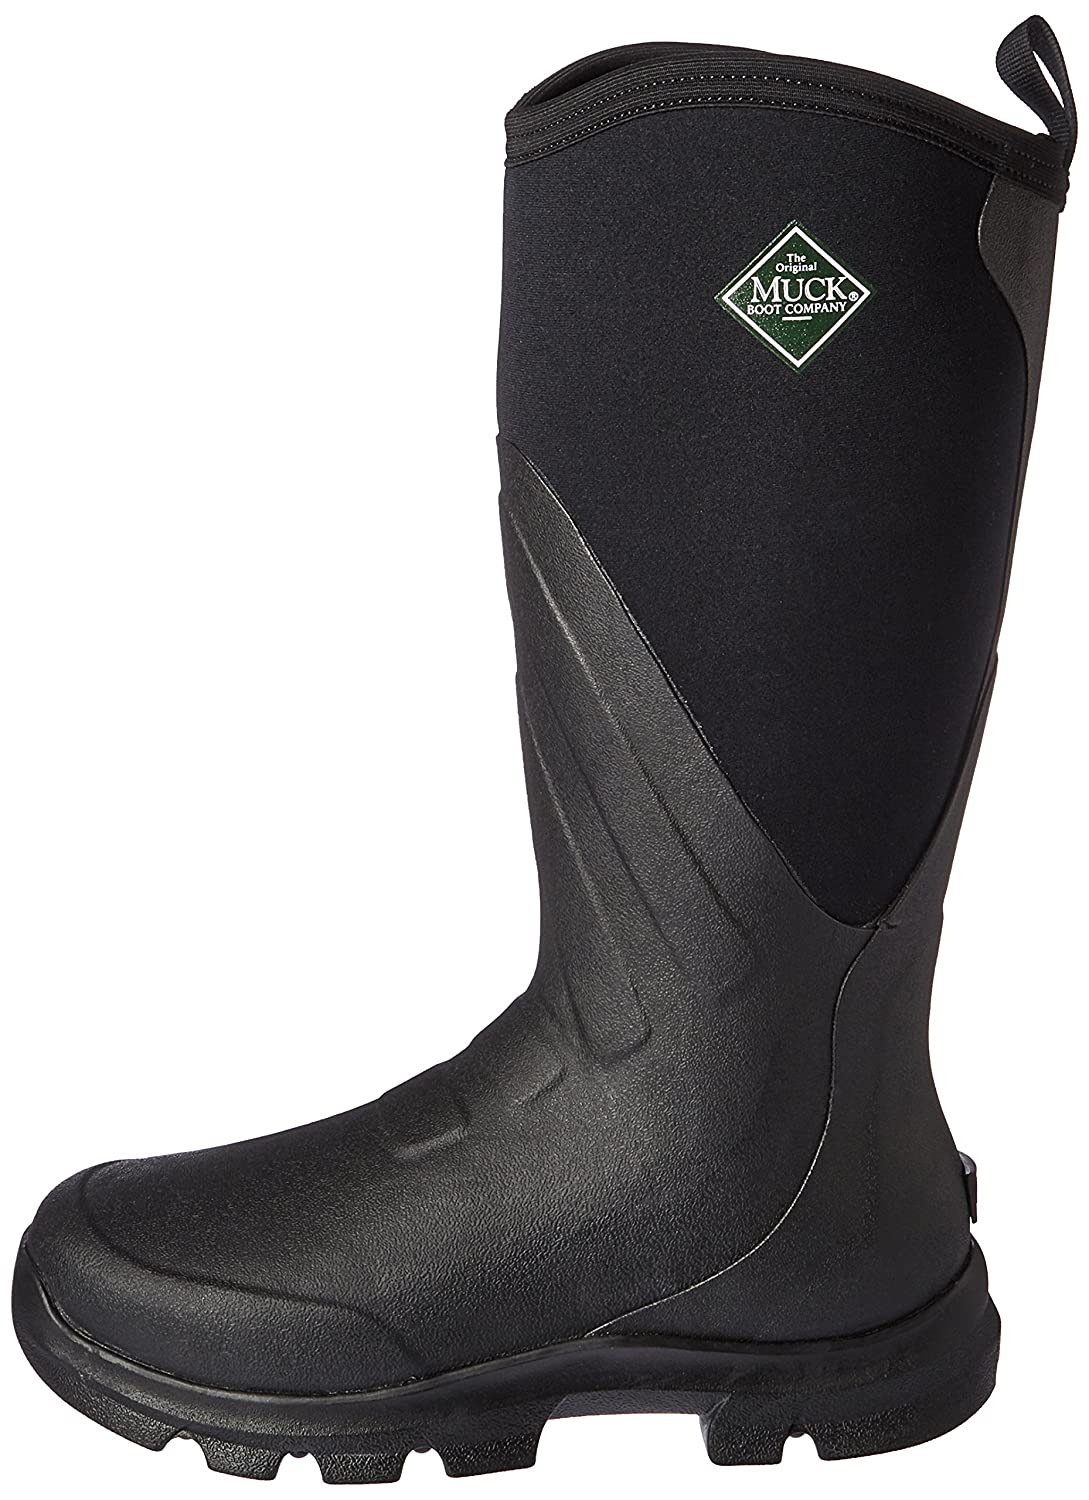 59feabab3bf Muck Boot Mens Muck Grit Work Boot: Amazon.ca: Shoes & Handbags